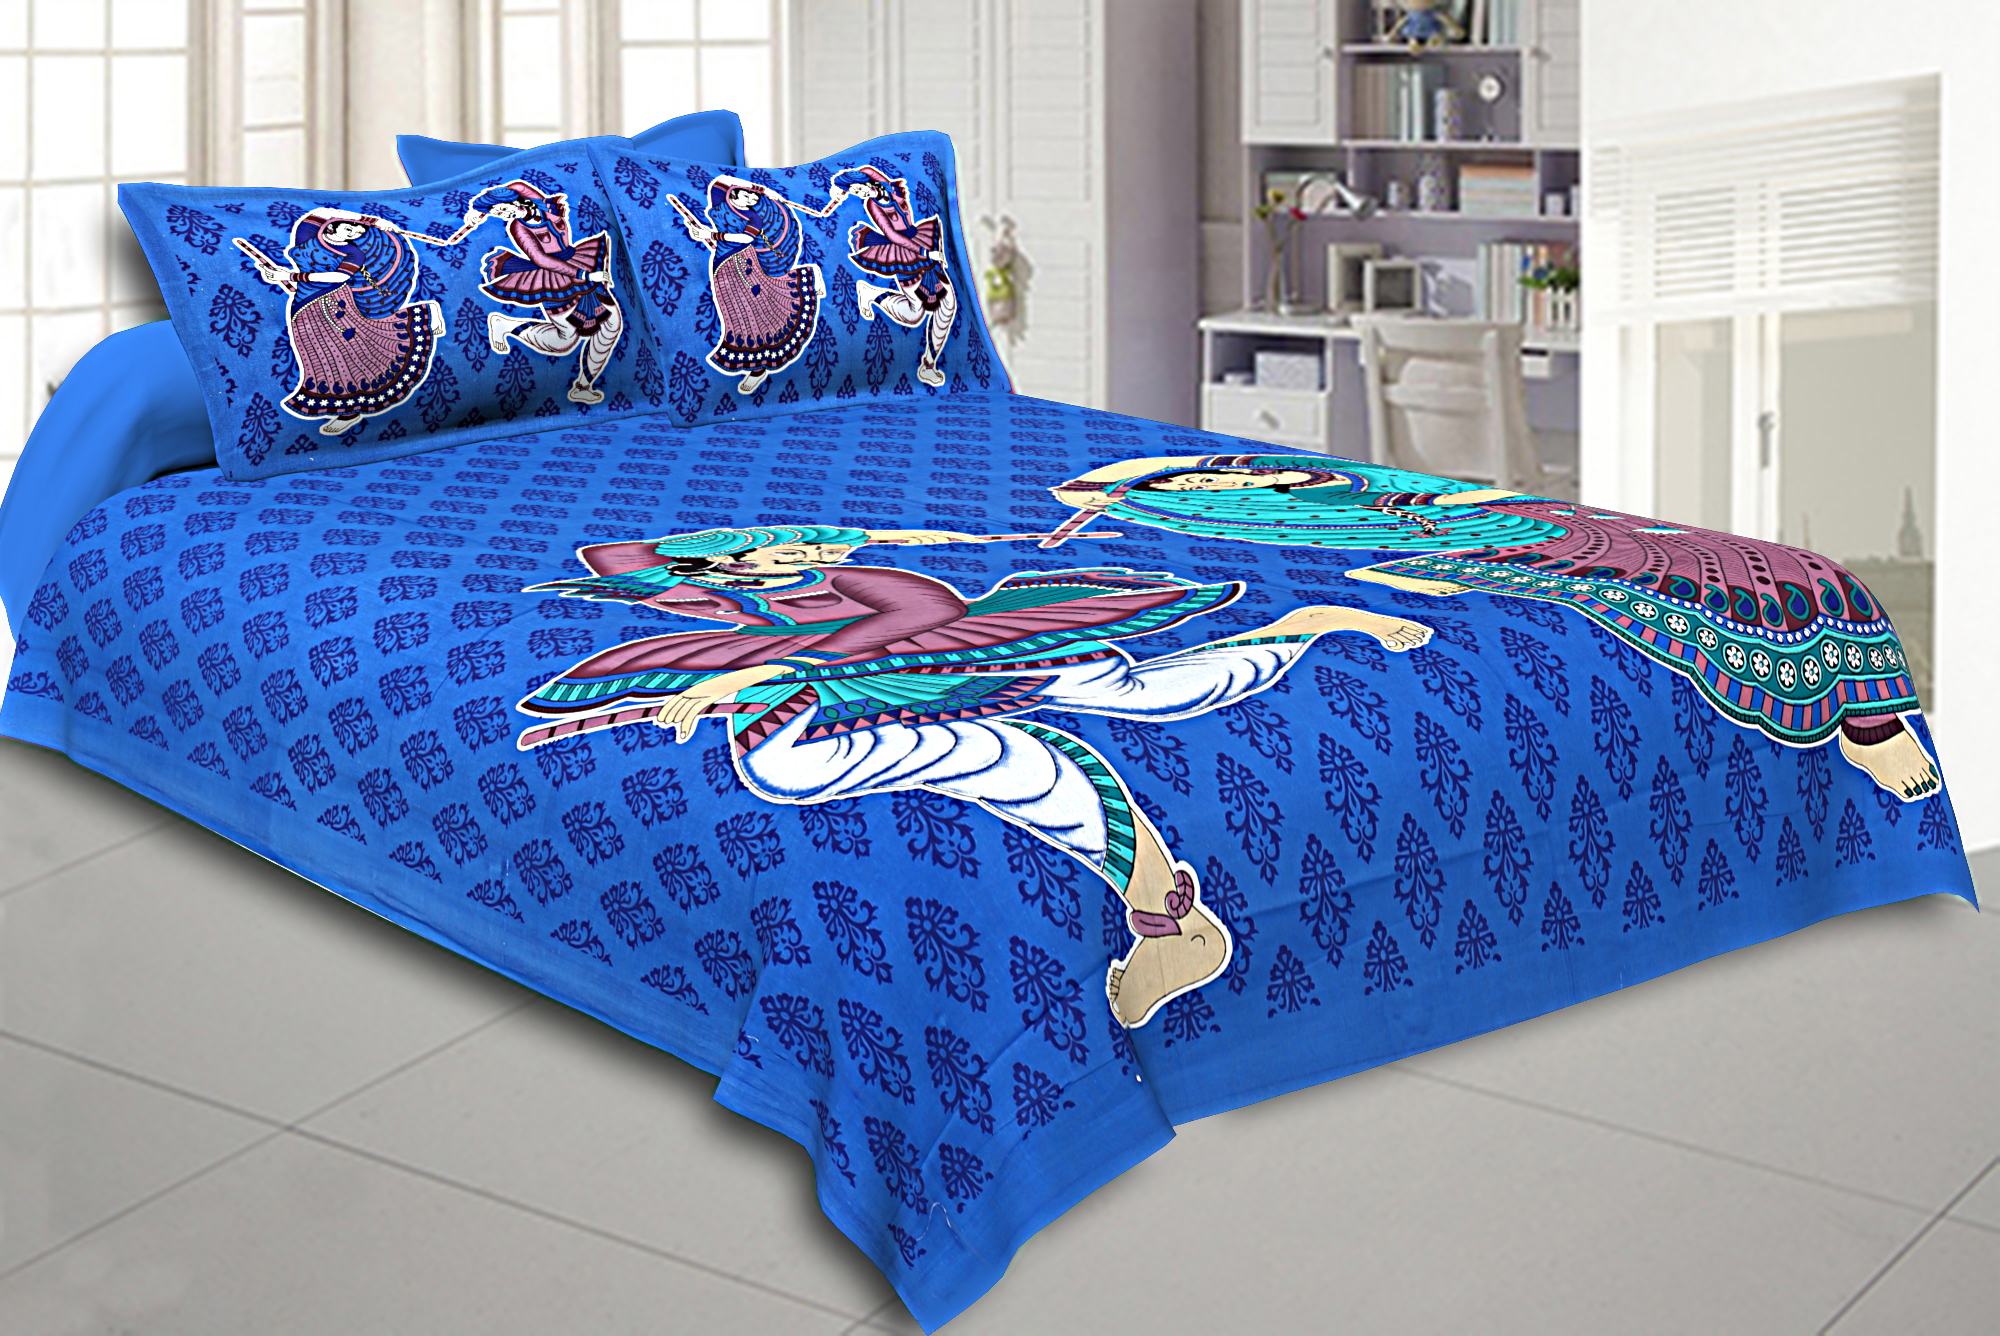 Kuber Industries Cotton 144 TC Double Bedsheet with 2 Pillow Covers (Blue)-CTKTC3462